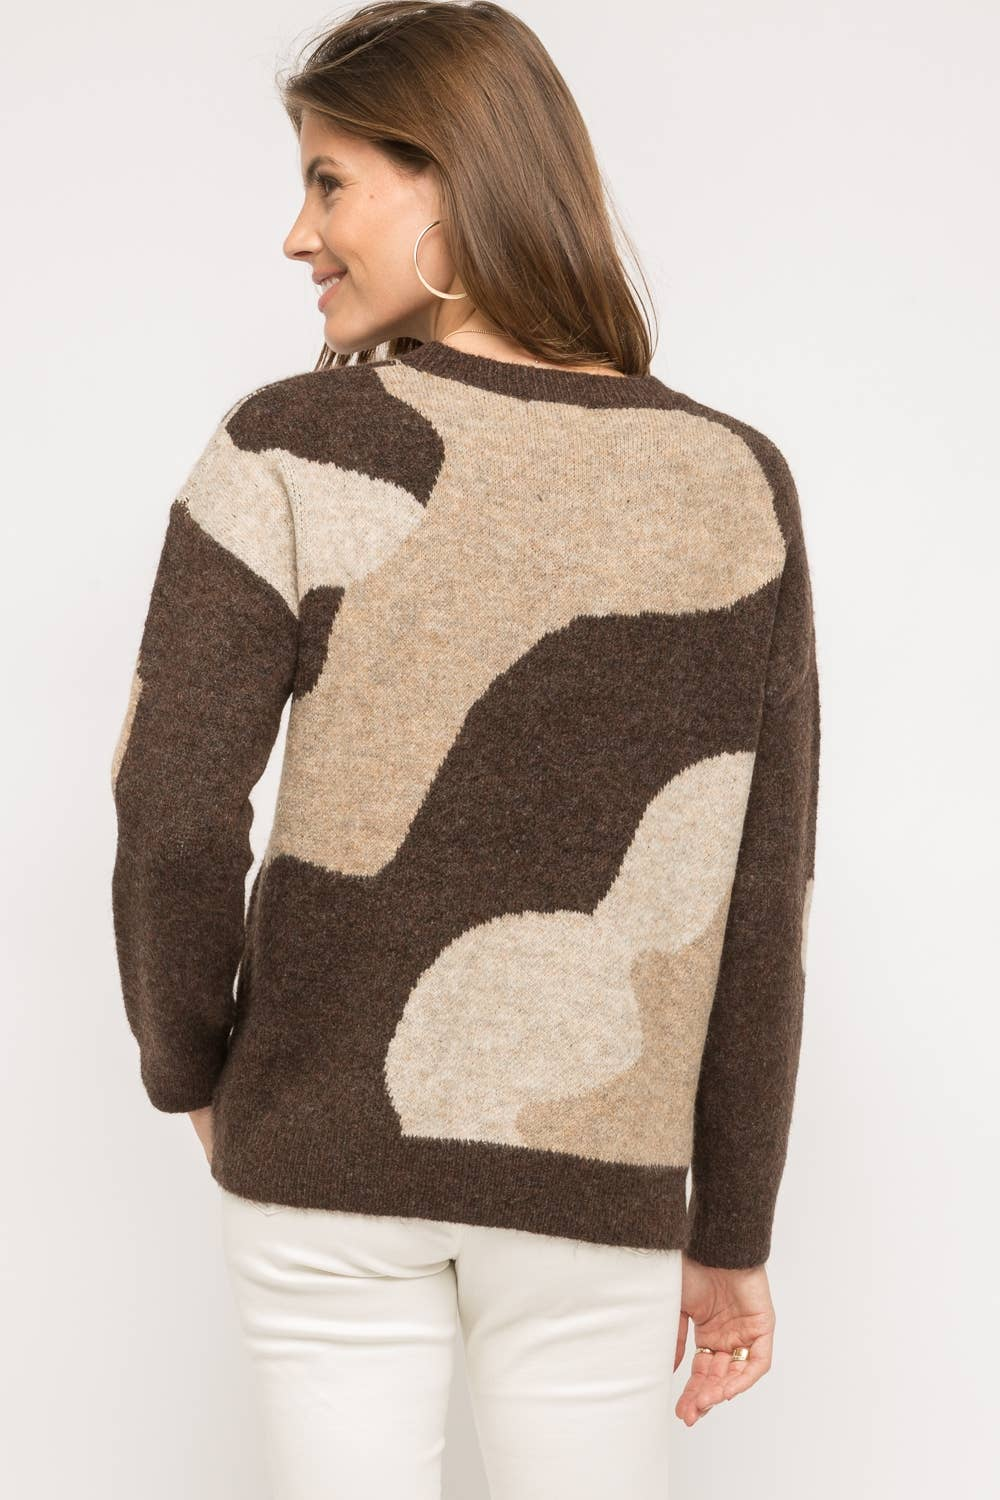 Camo Pattern Pullover Sweater